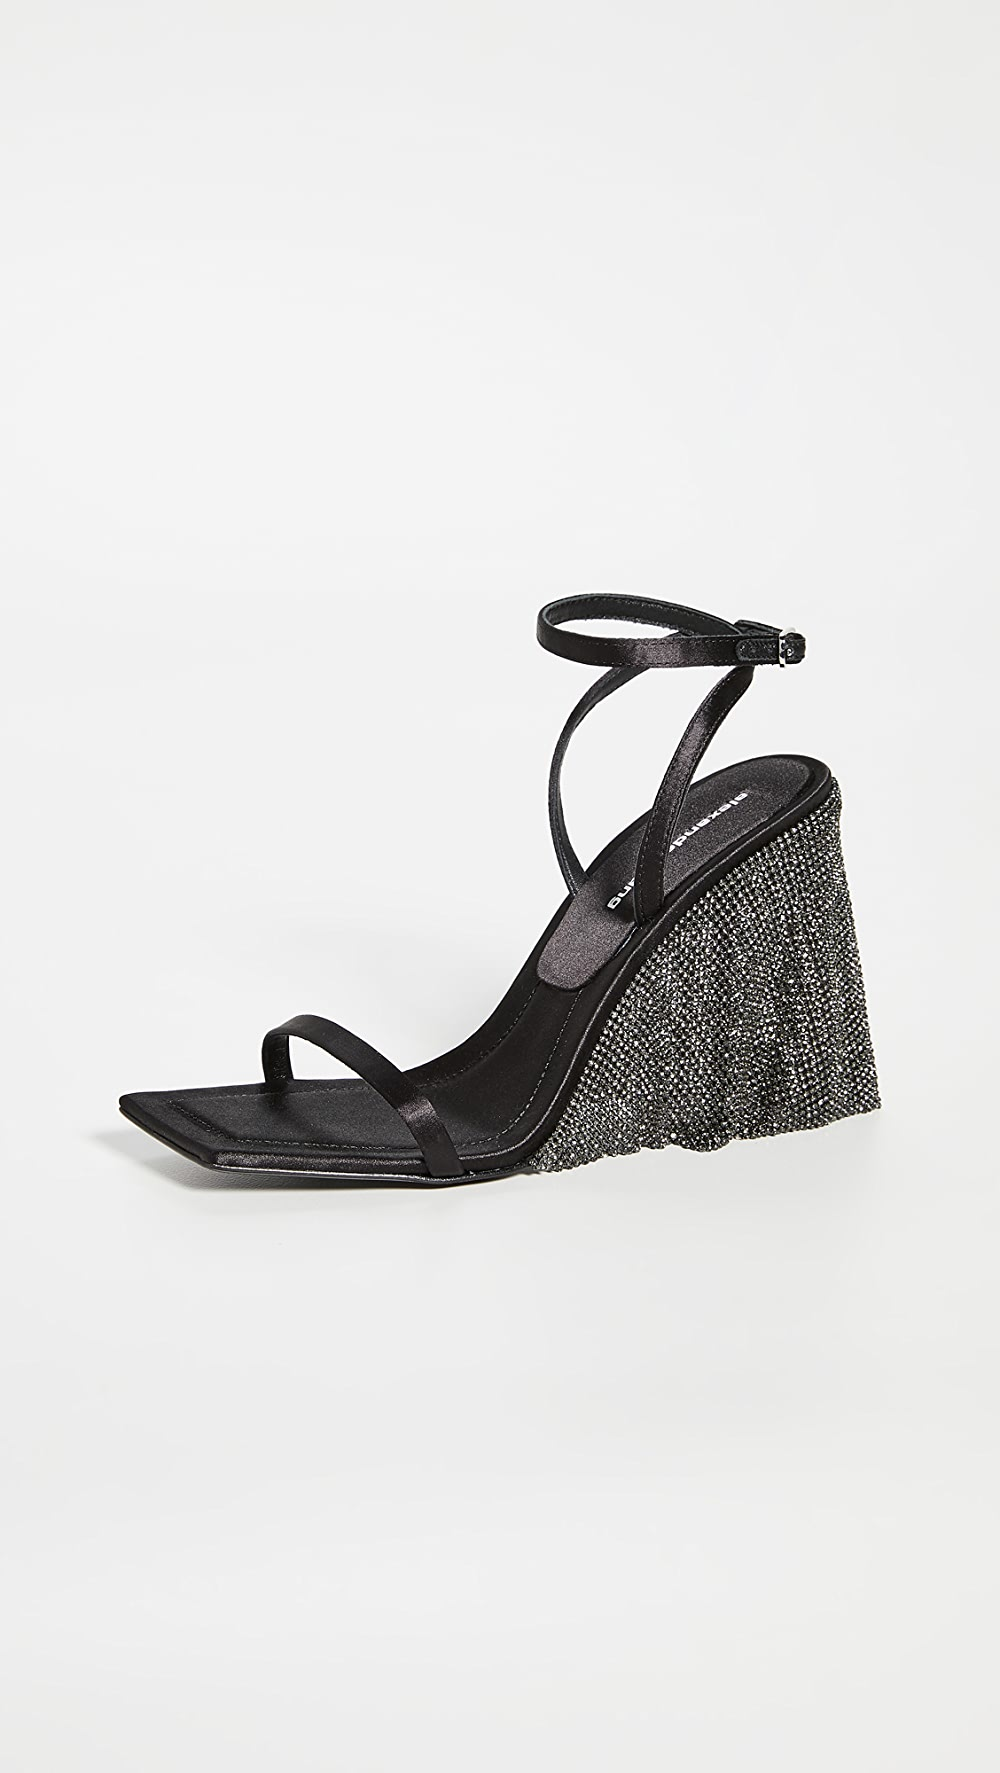 Collection Here Alexander Wang - Blake Sandals Discounts Price